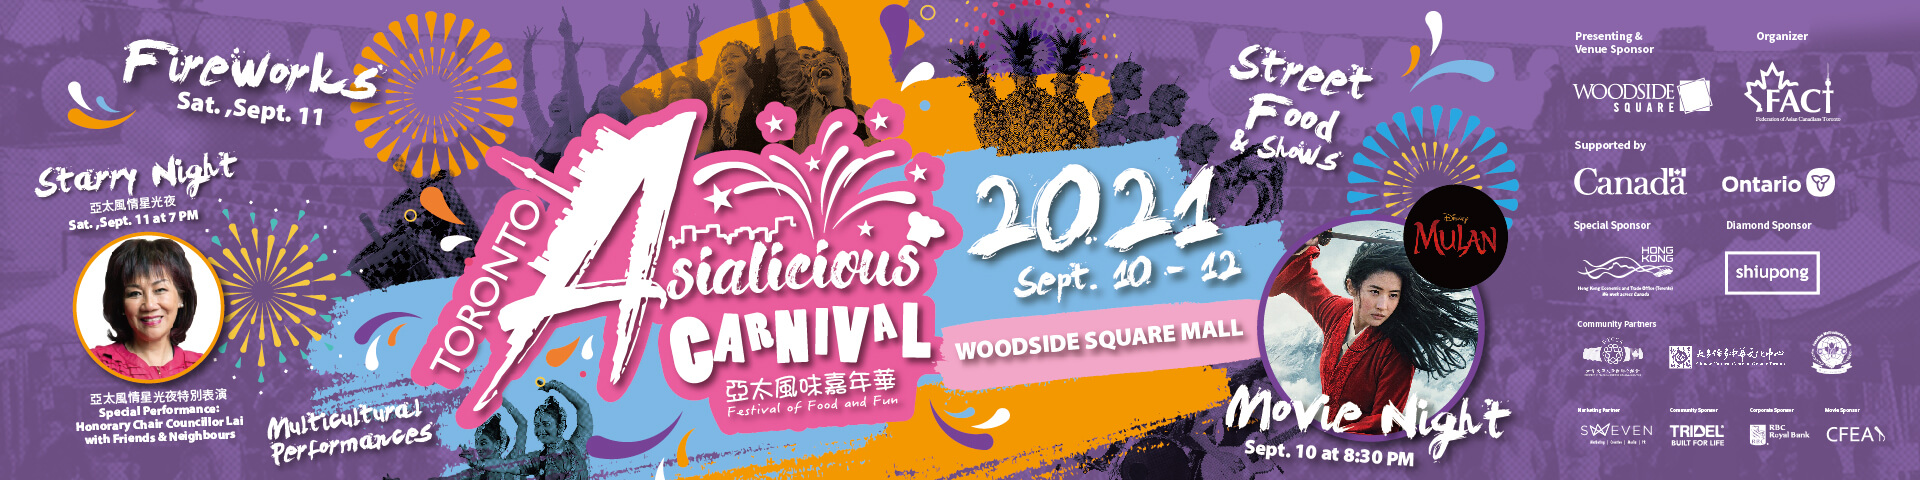 asialicious canival 2021 banner 4 | Asialicious Carnival